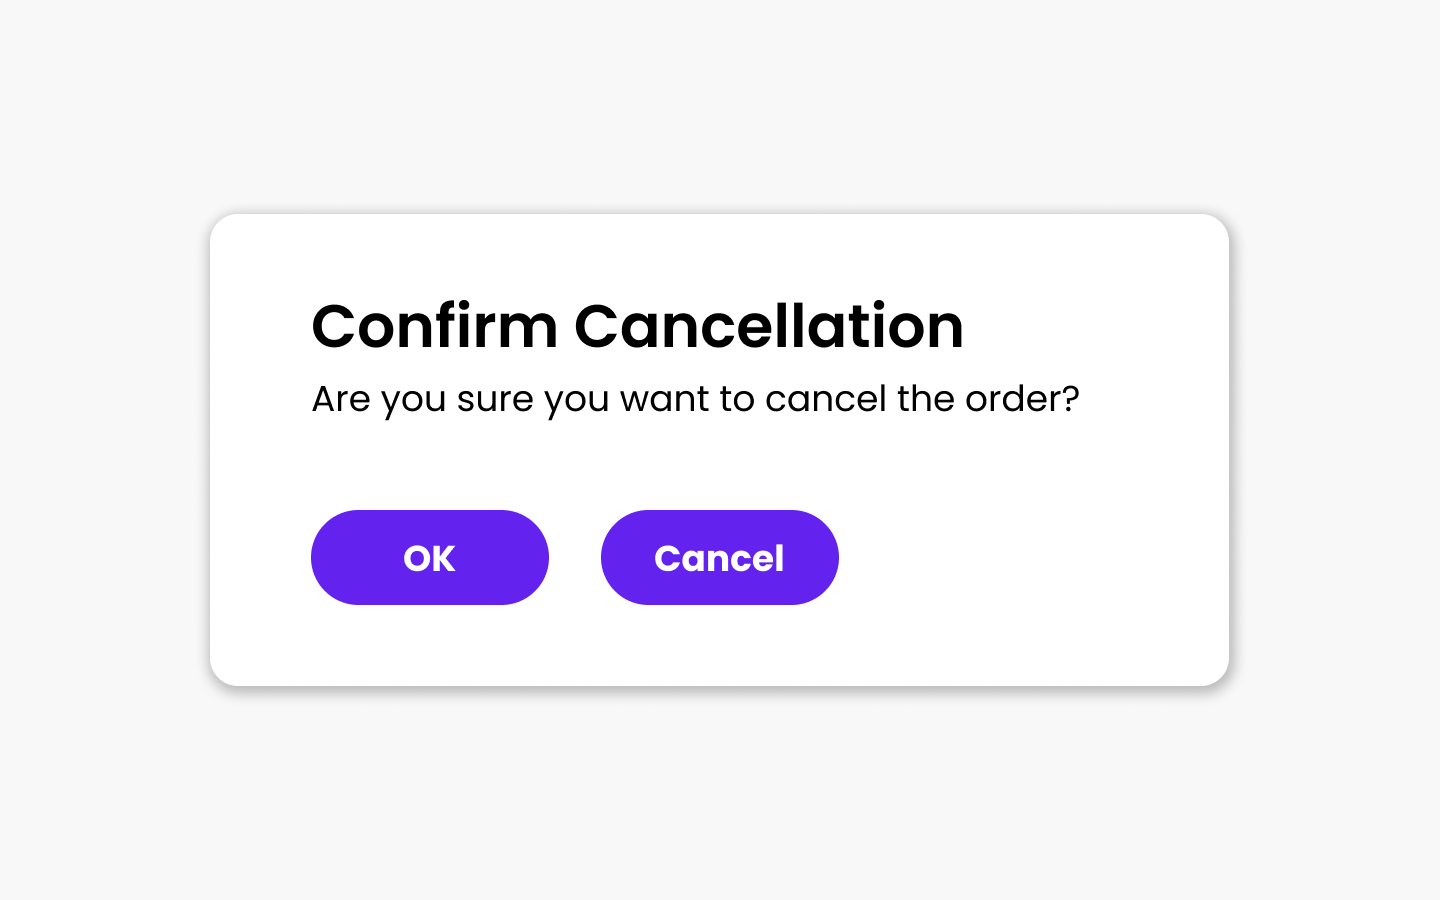 Confirm cancellation message